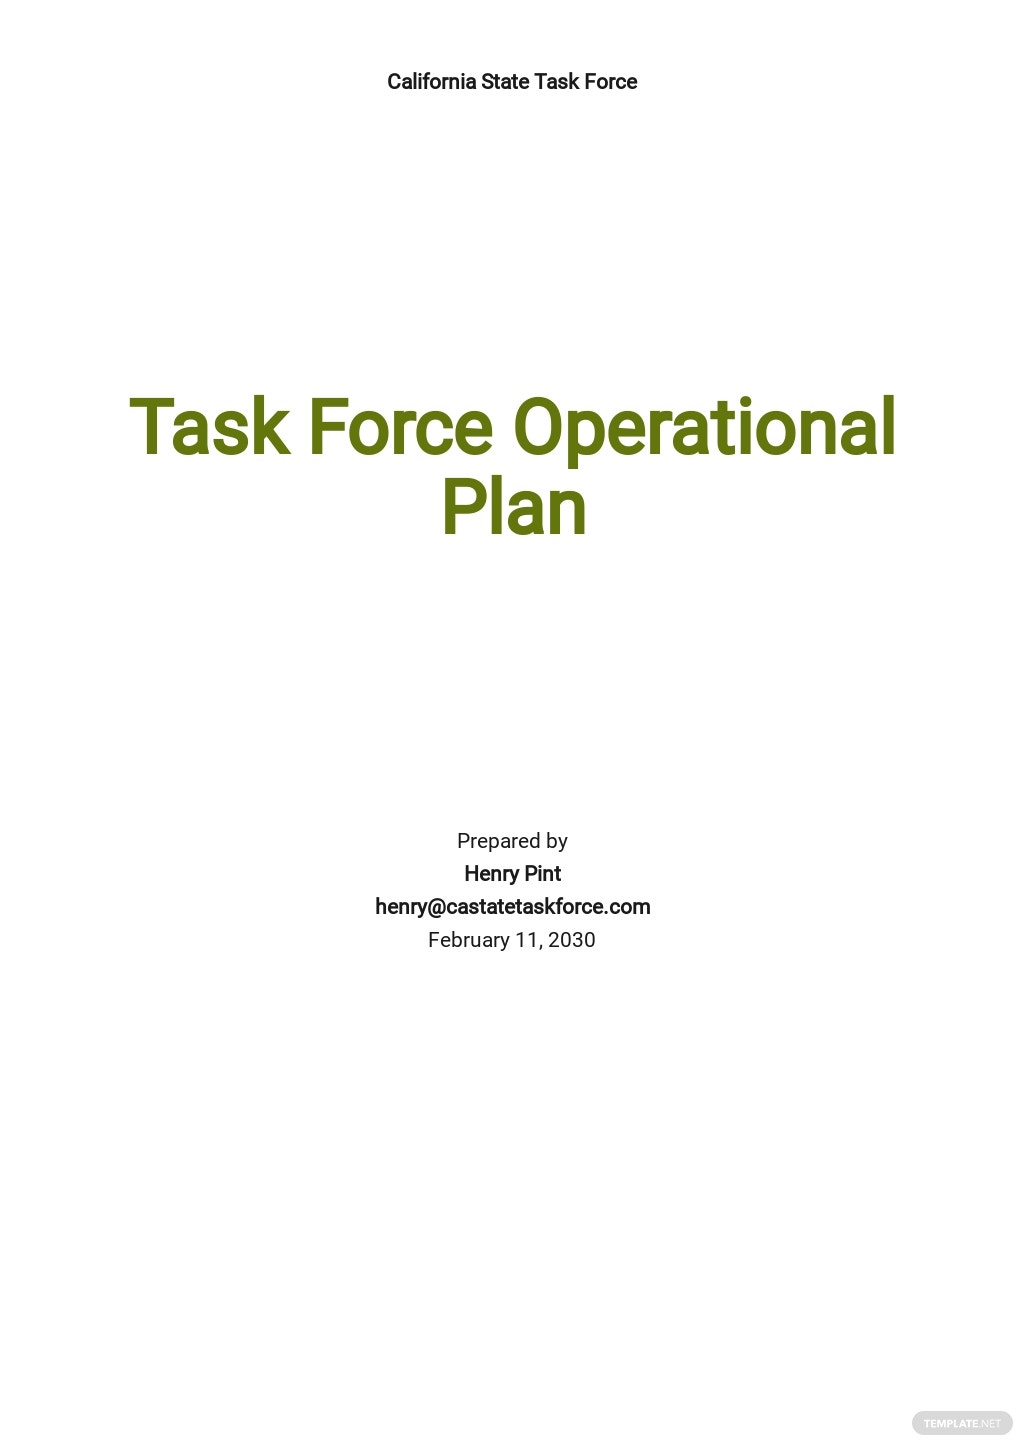 Task Force Operation Plan Template